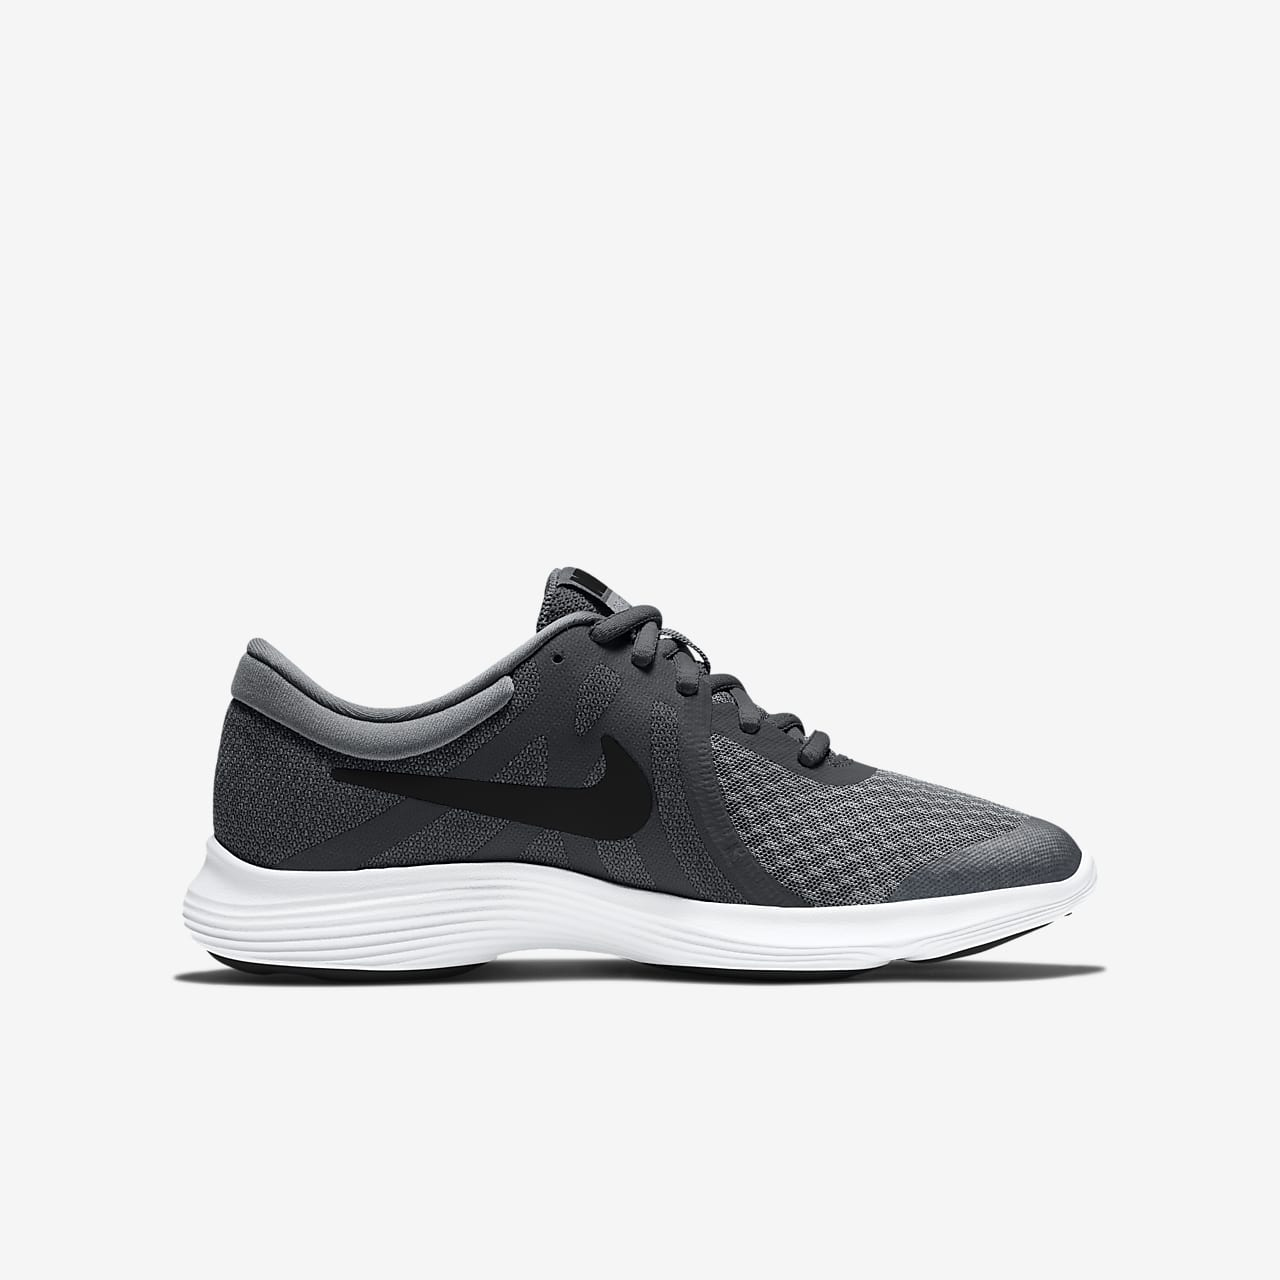 Chaussures Nike Revolution bleues